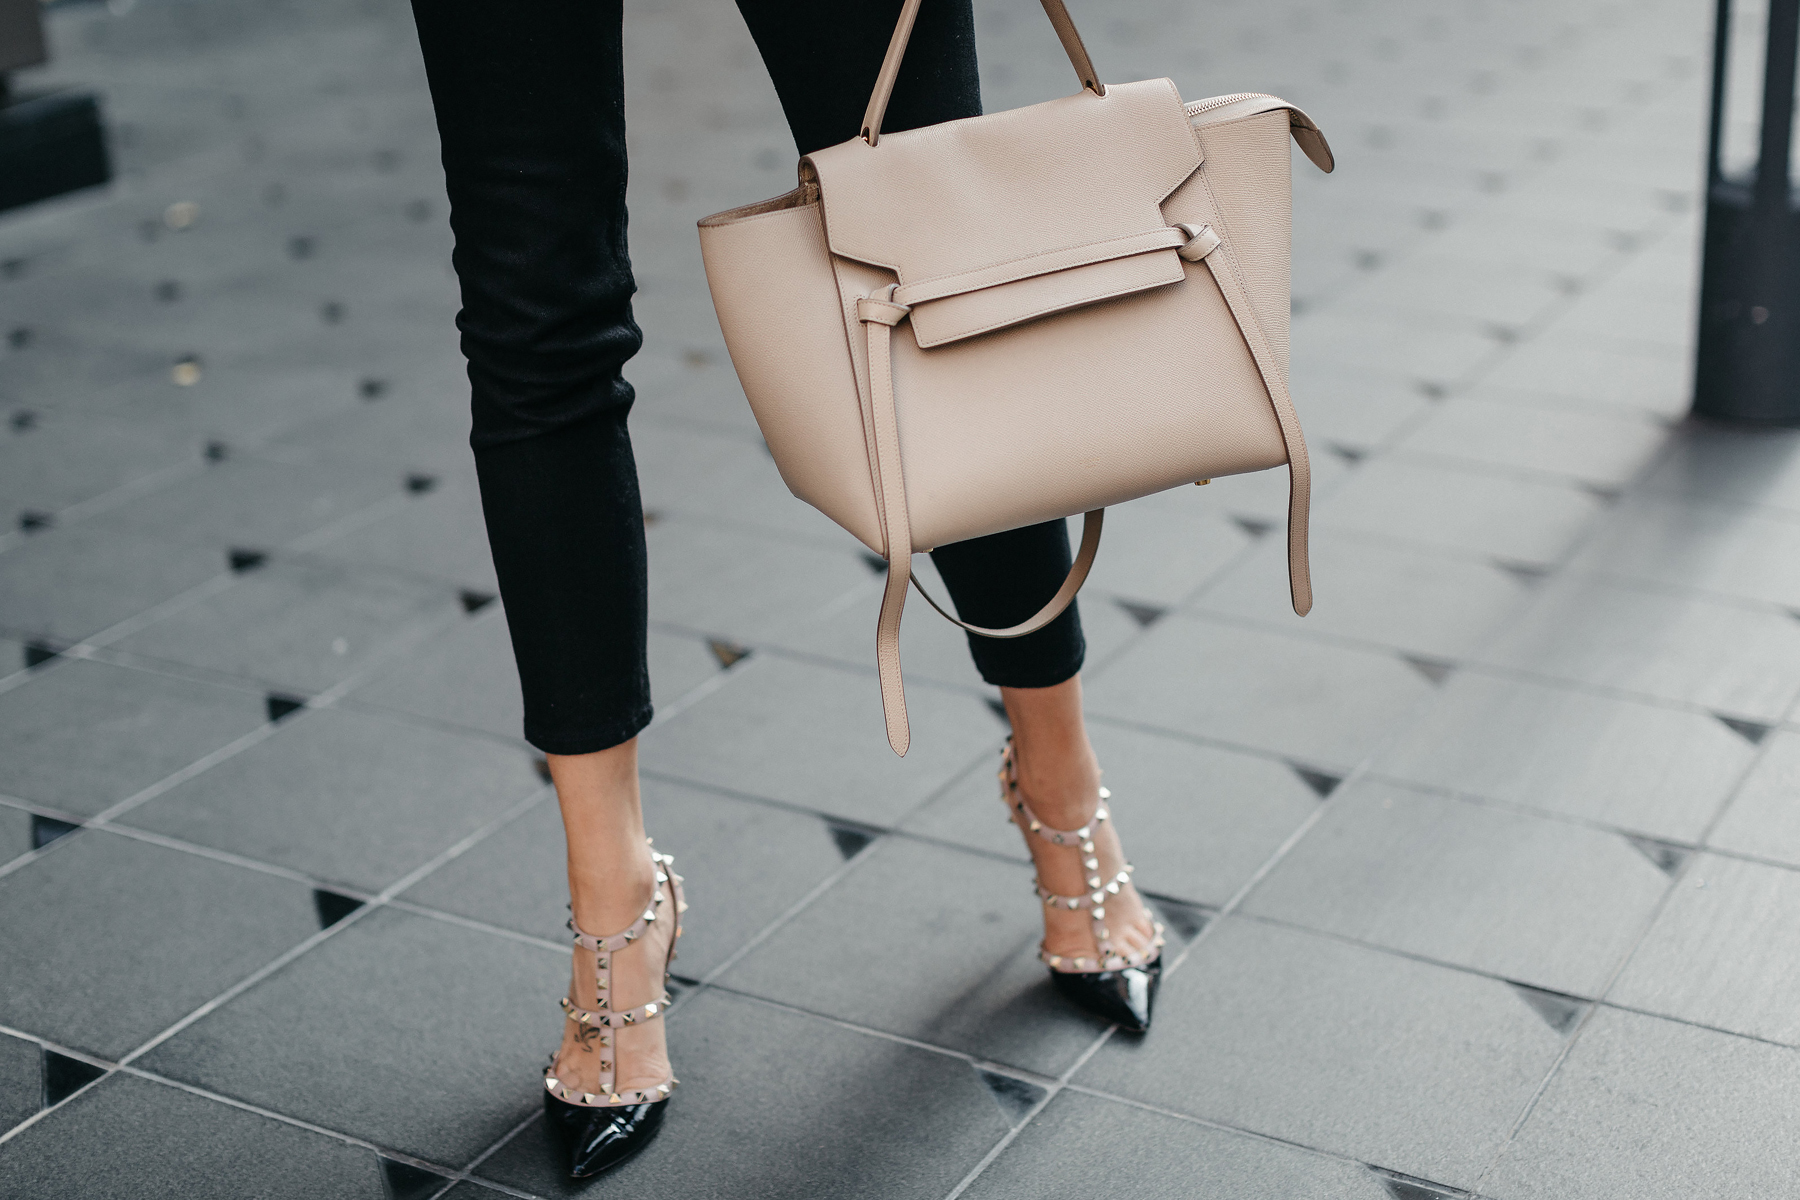 Celine Belt Bag Mini Valentino Rockstud Pumps Fashion Jackson Dallas Blogger Fashion Blogger Street Style